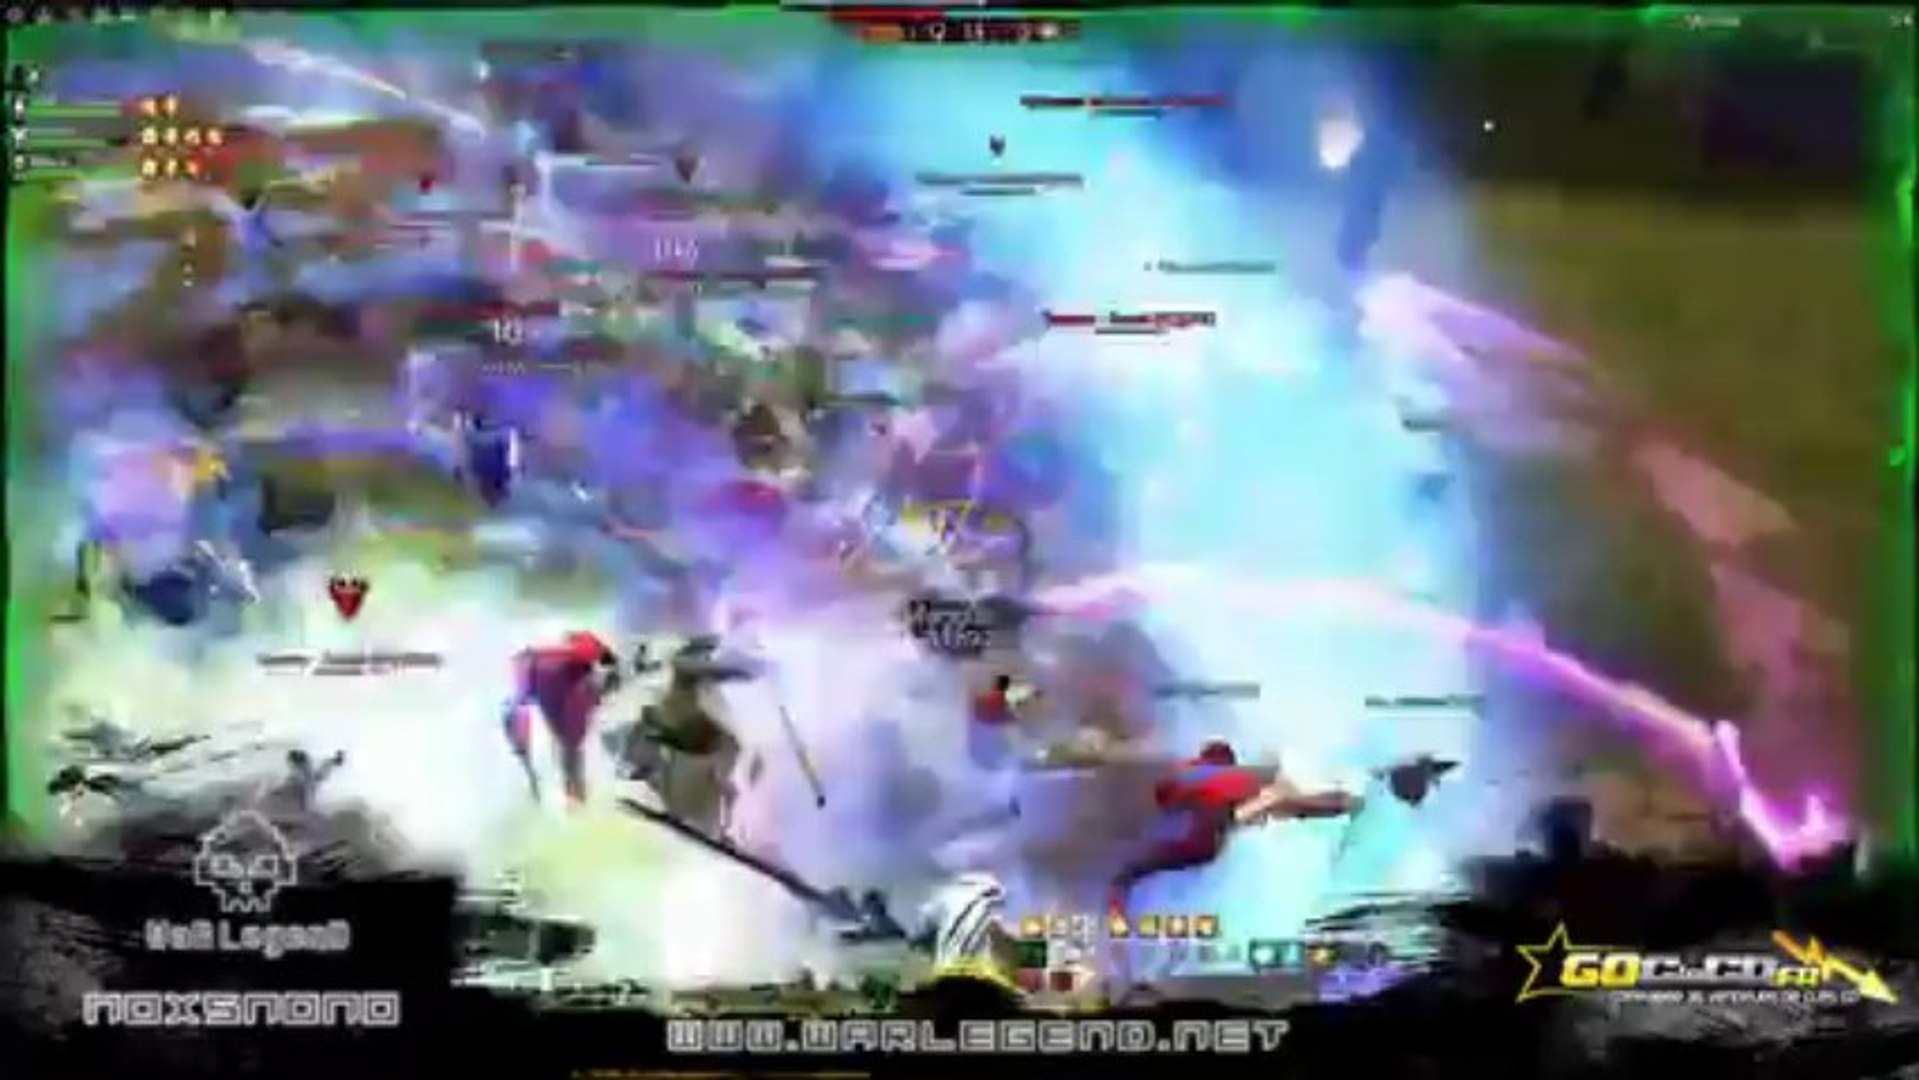 BattleStar WaR LegenD Guild Wars 2 - 03-10-2013